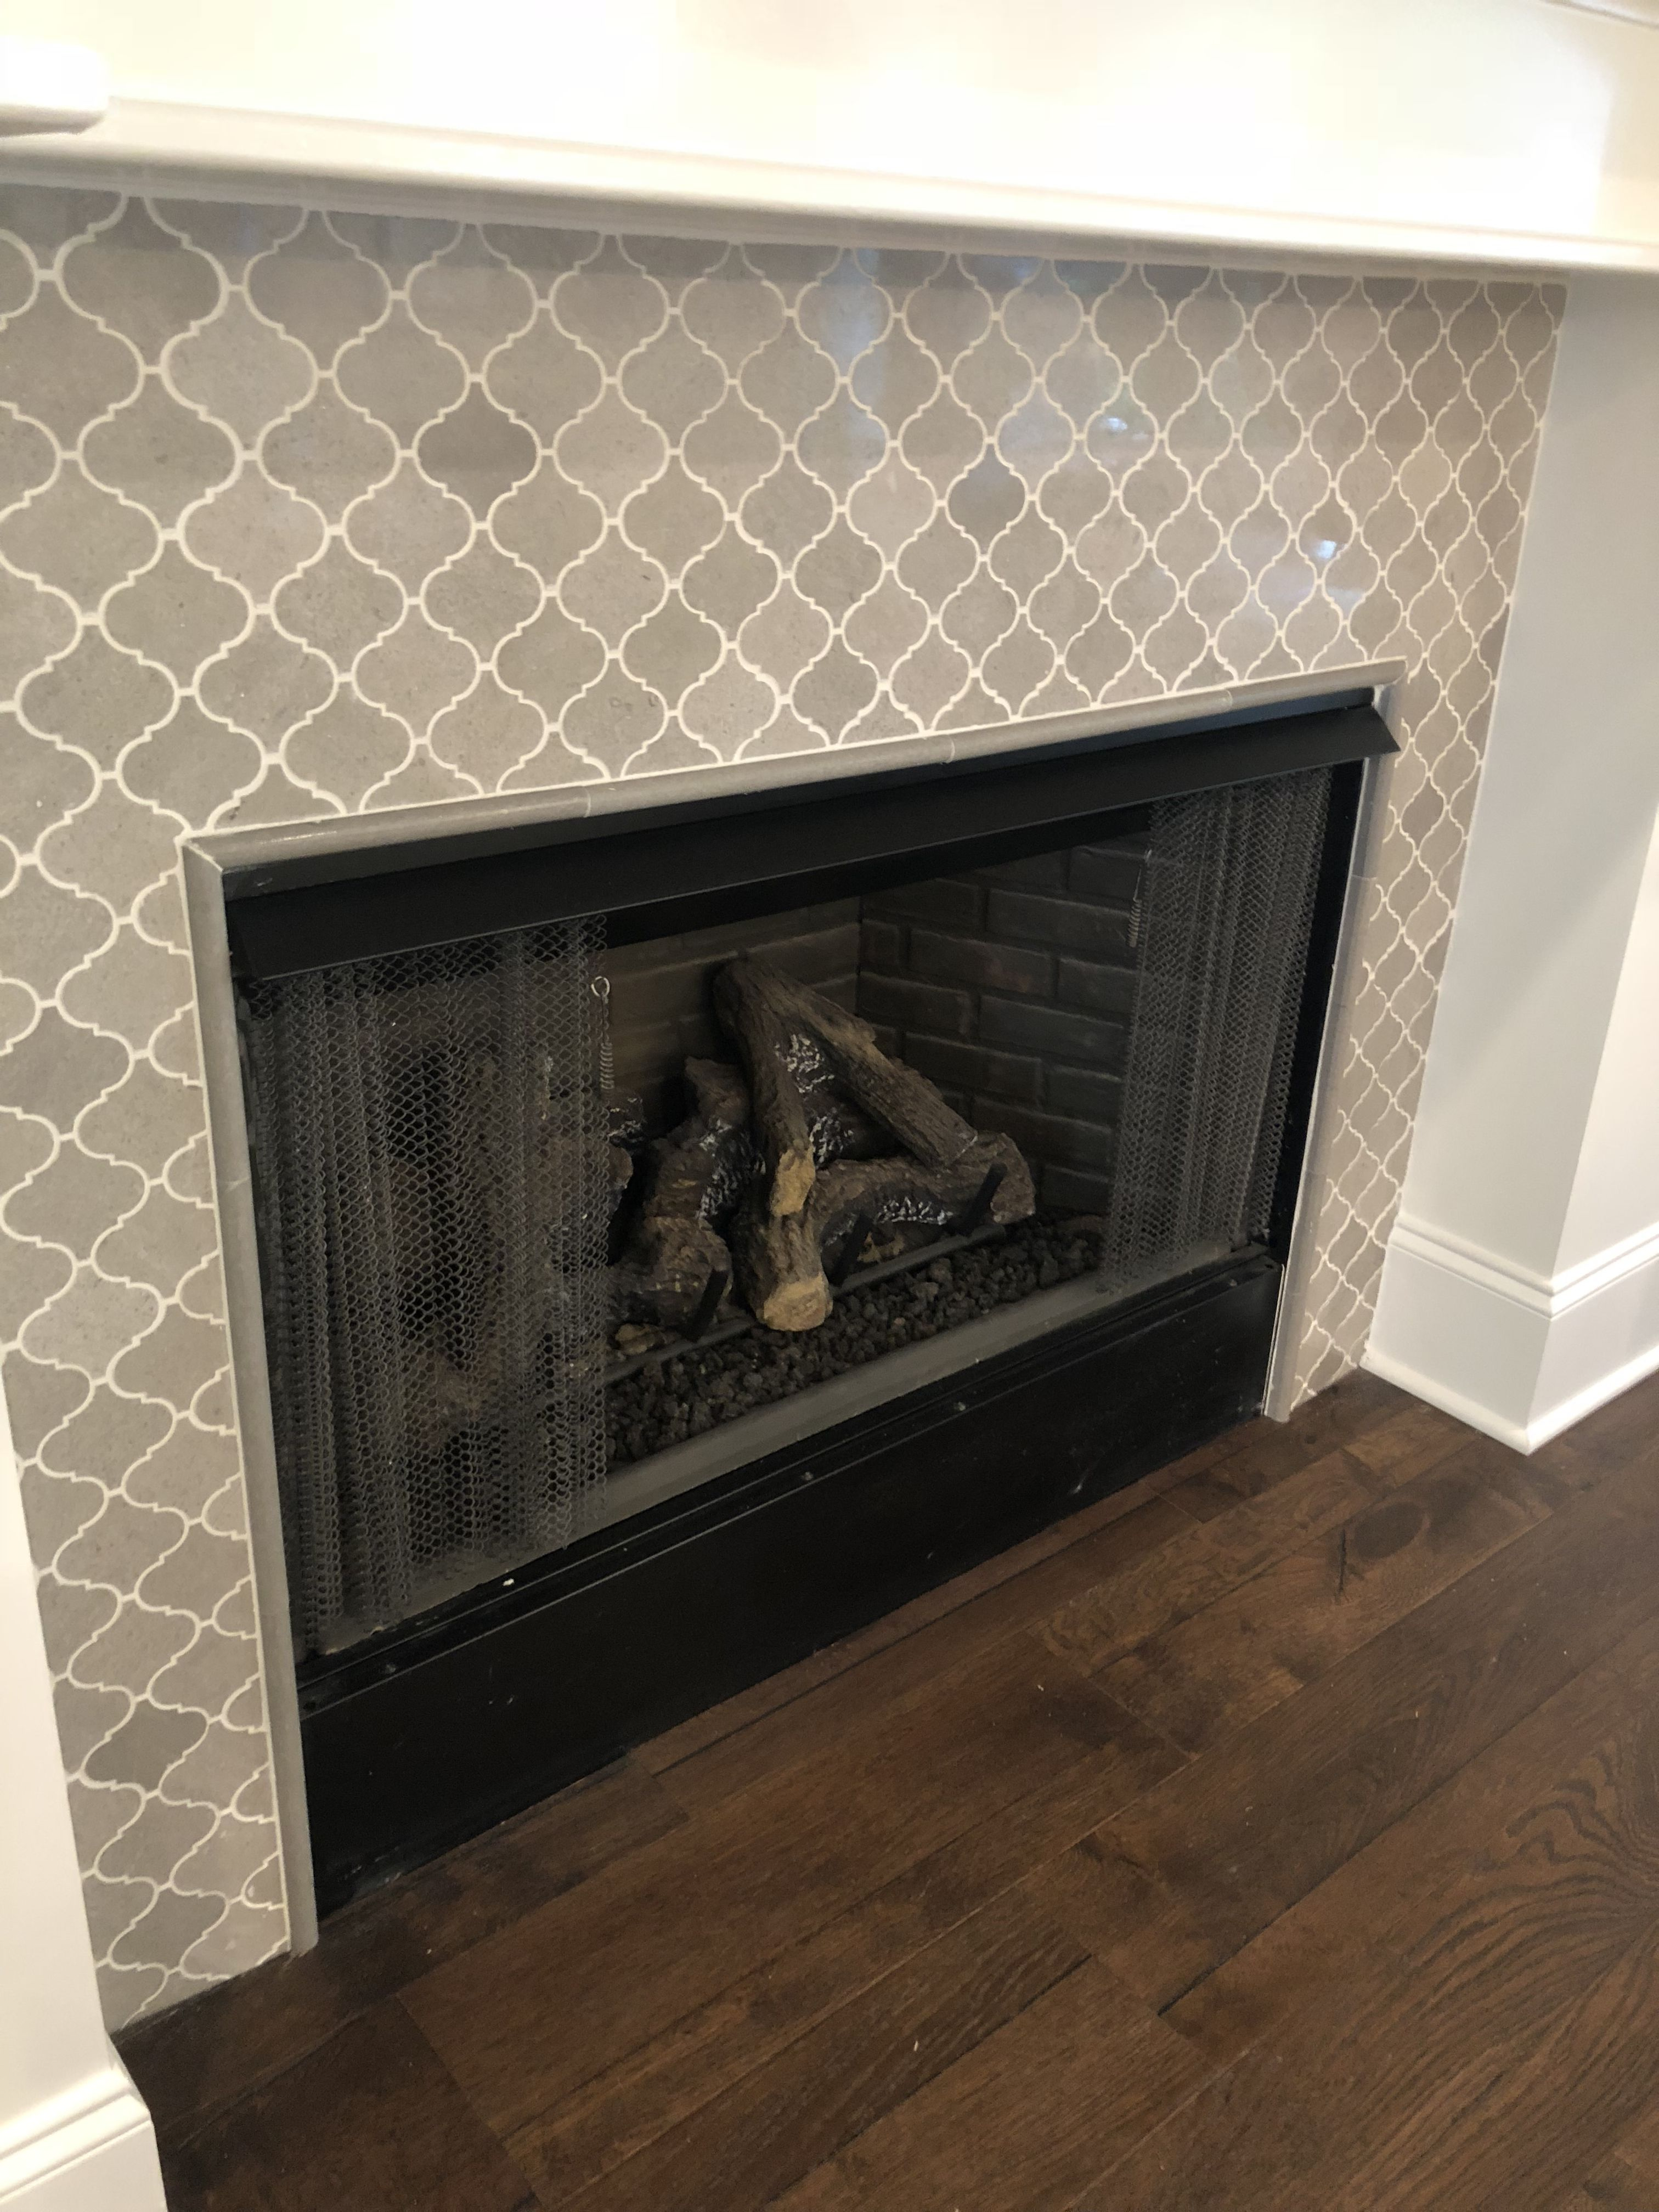 Fireplace With Arabesque Surround Fireplace Tile Surround